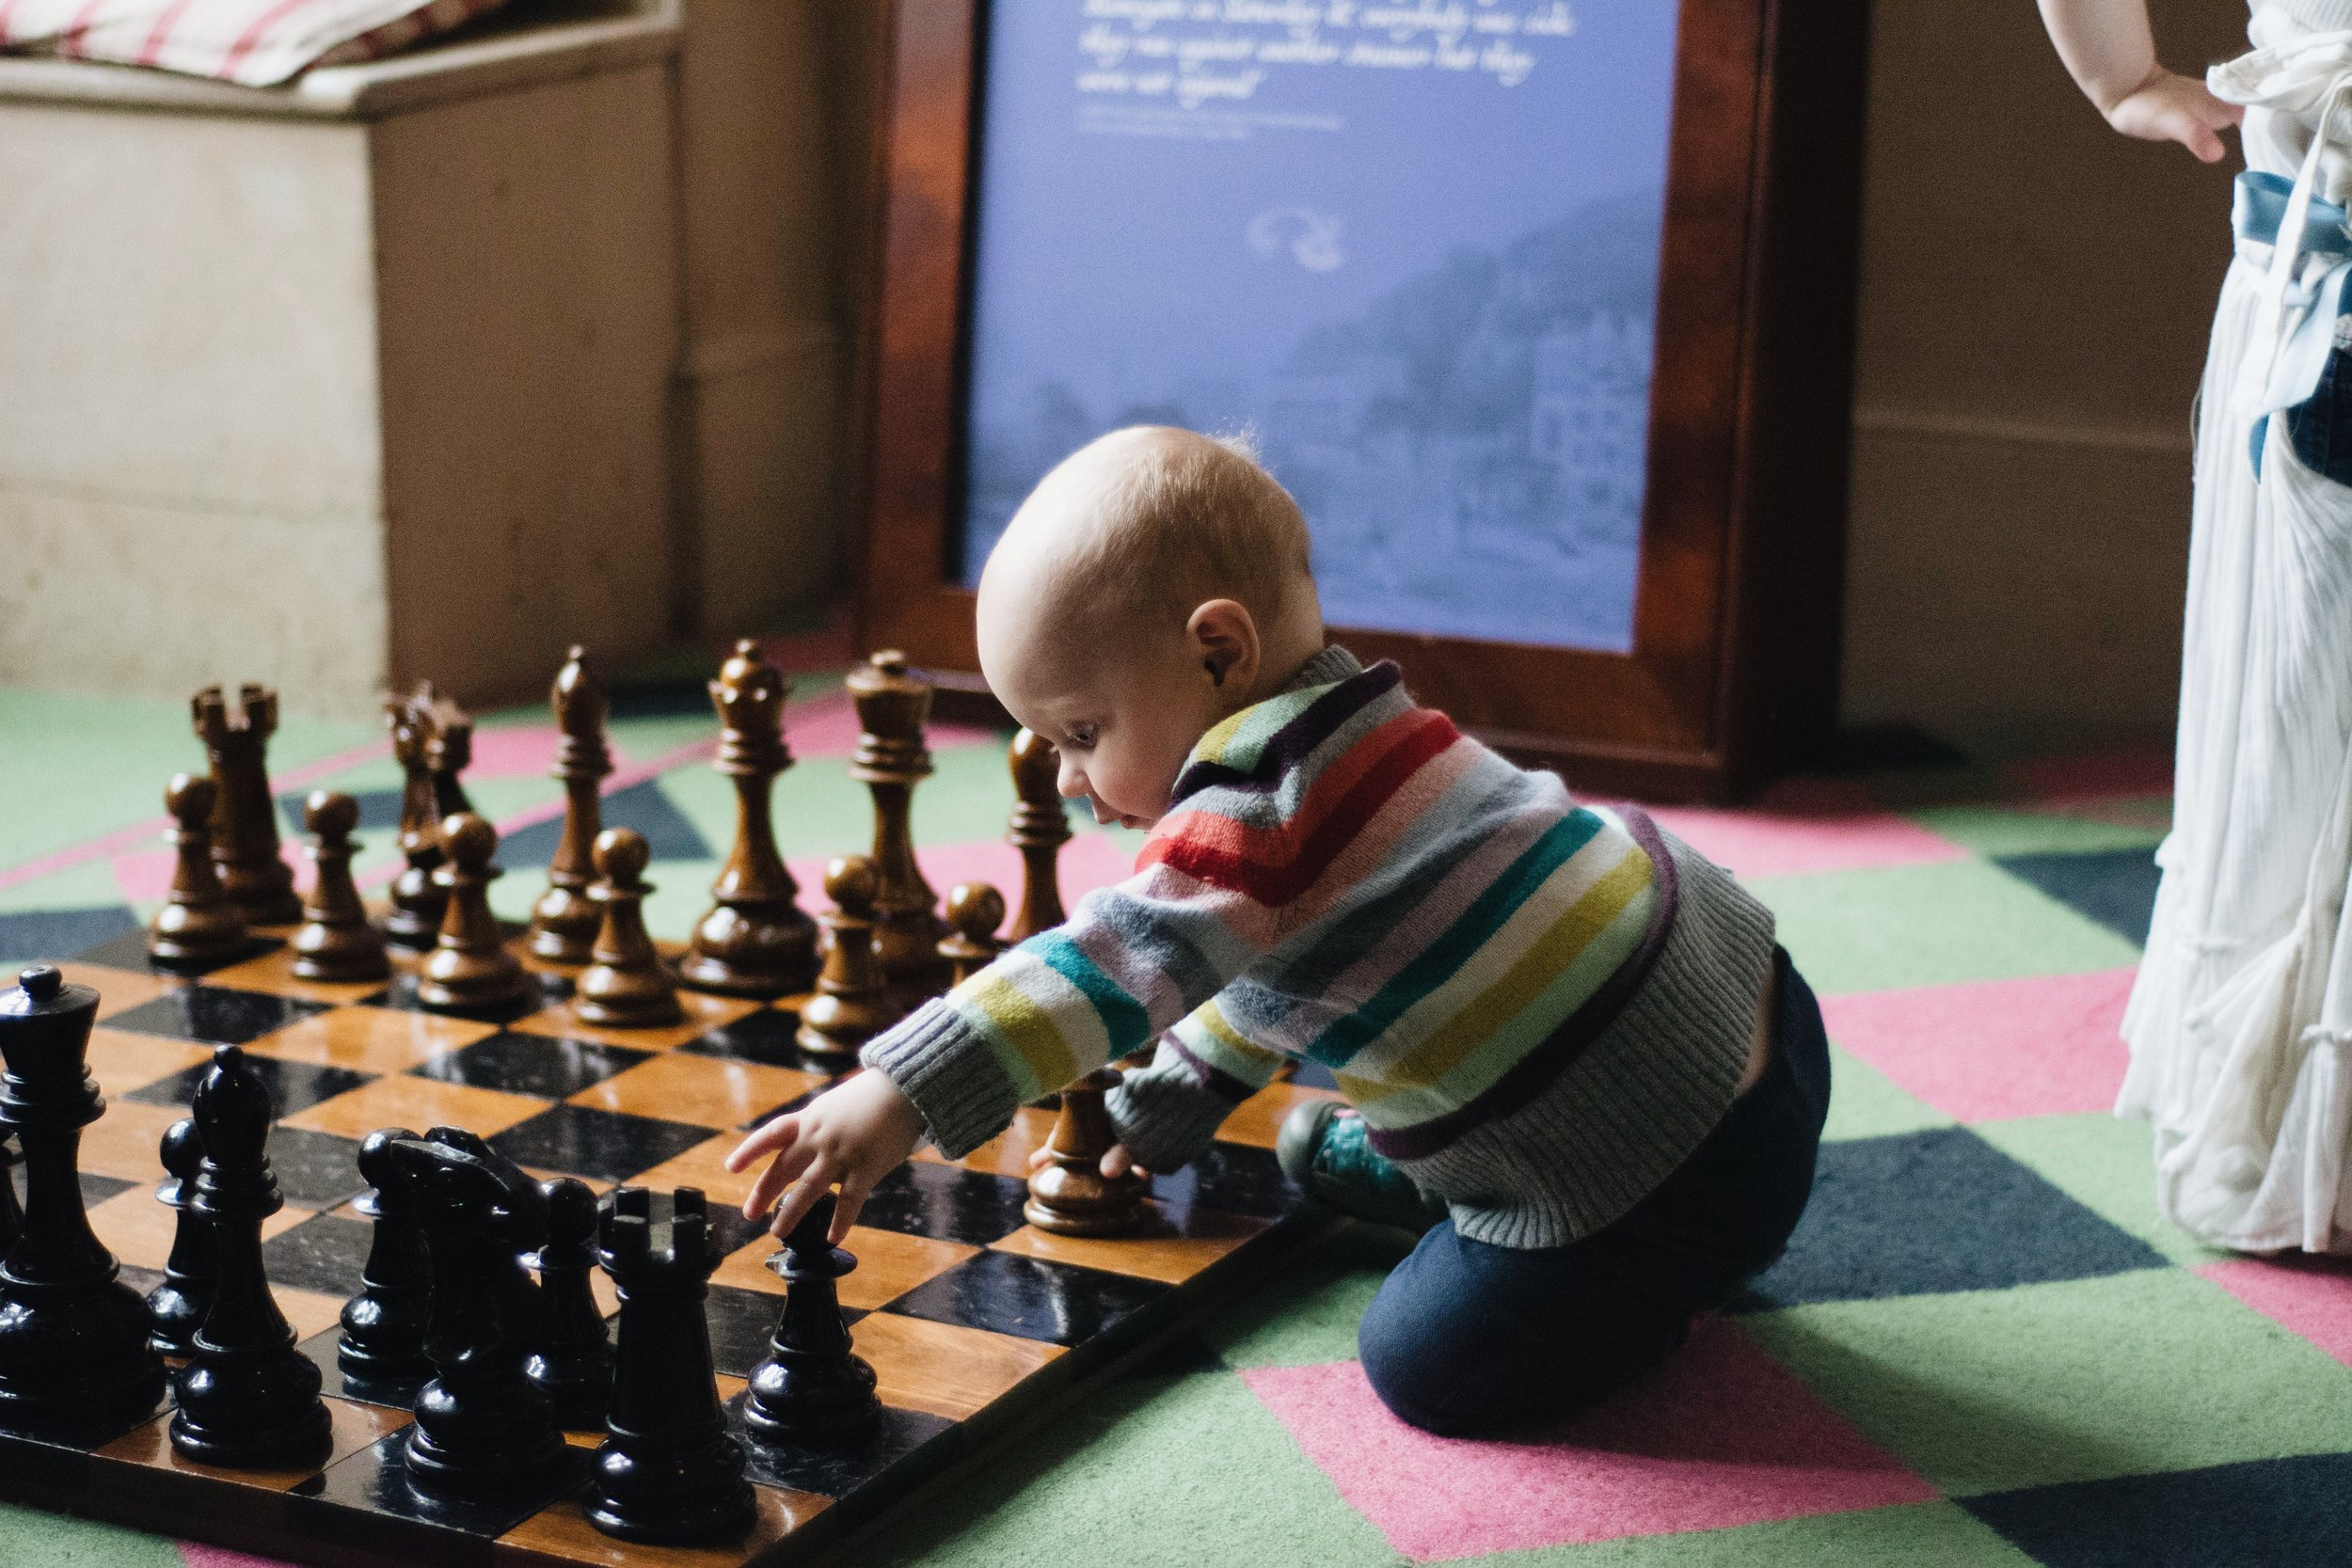 A mega chess set for kids to play around with.